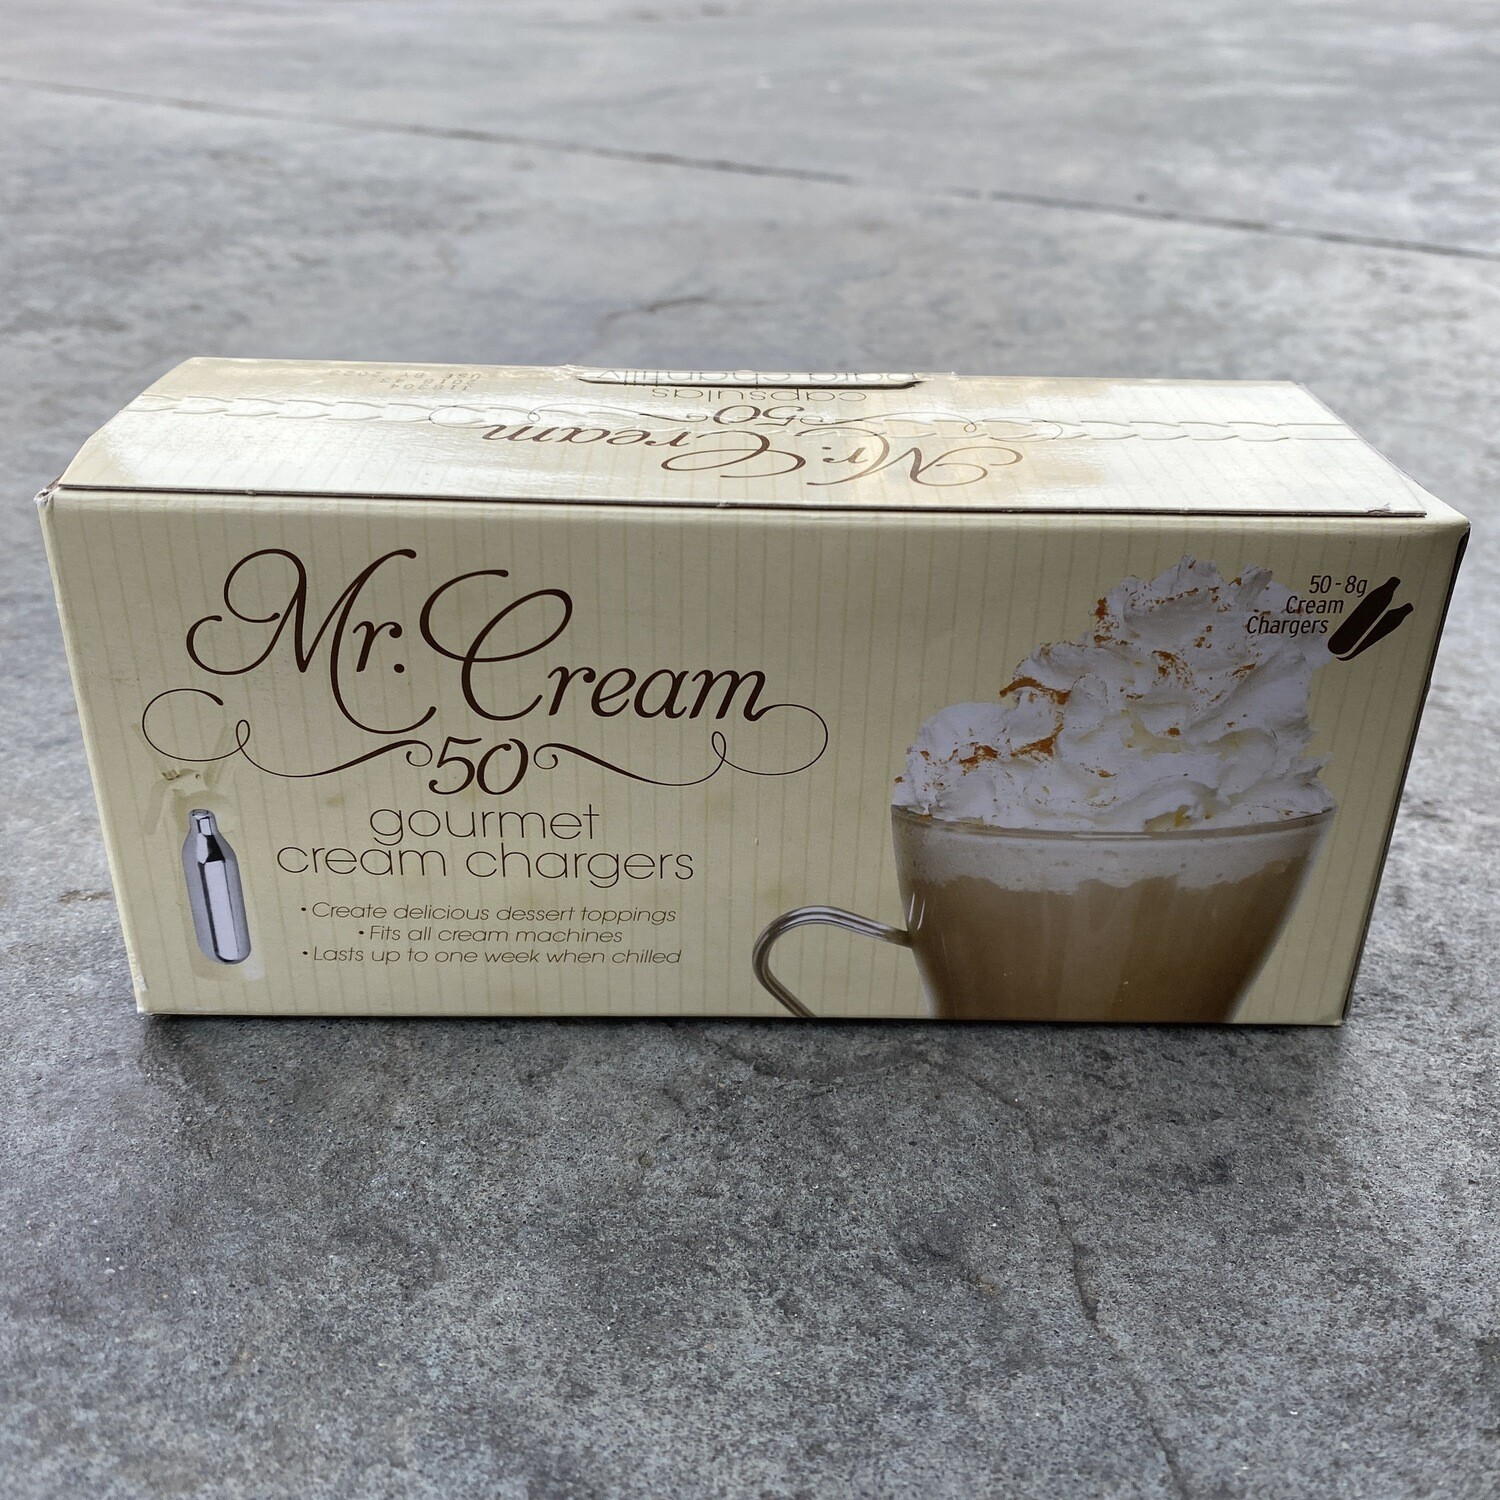 Whipped Cream Chargers 50ct